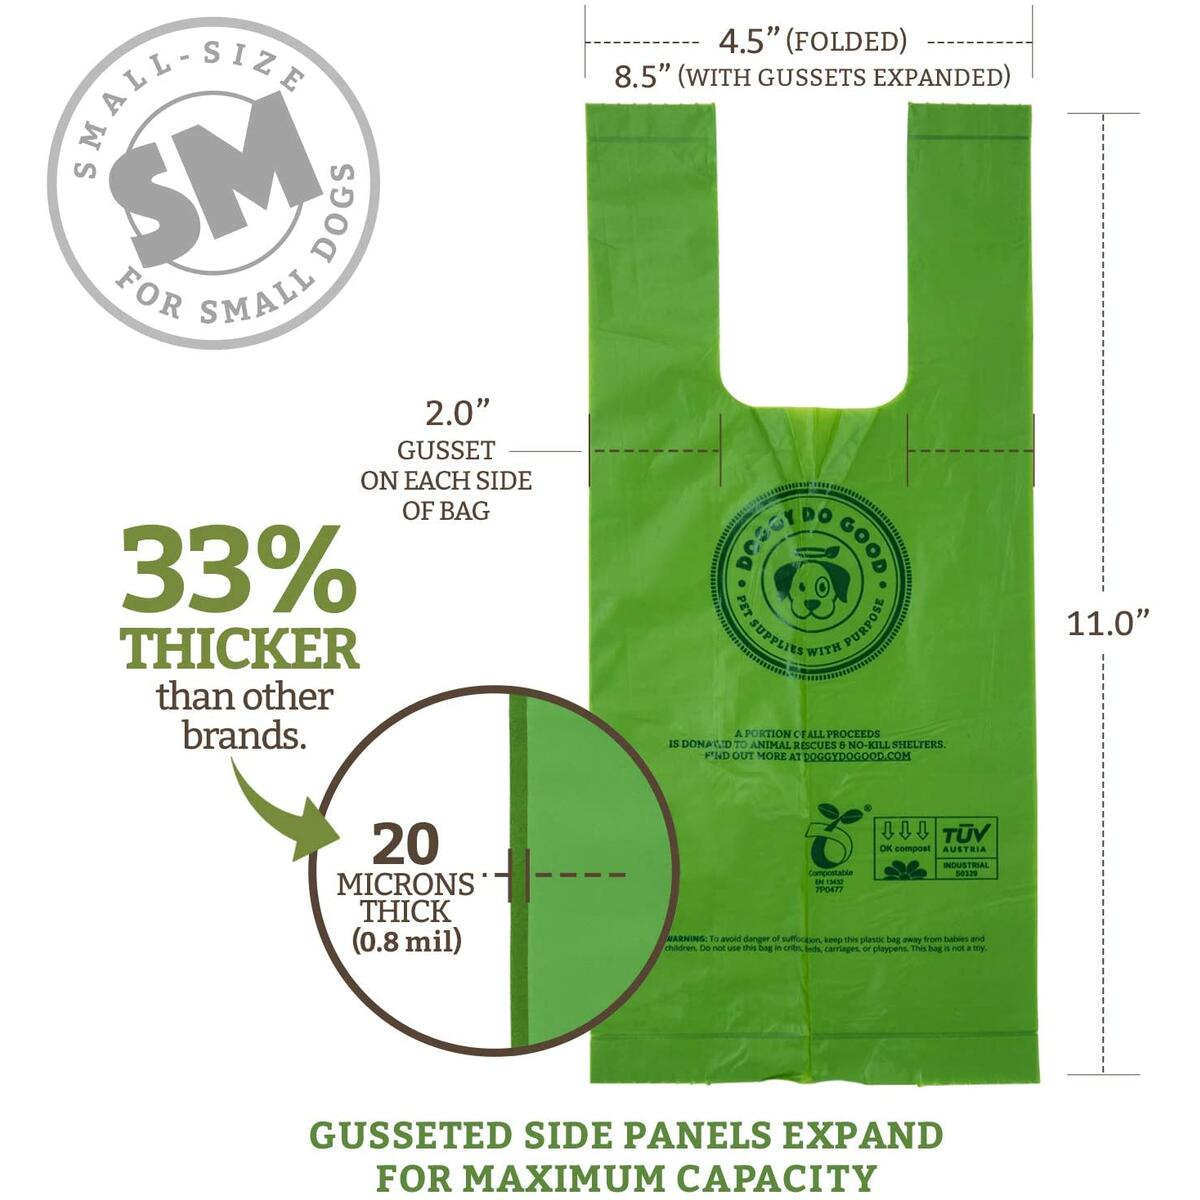 Biodegradable & Compostable Pet Waste Bags for Small Dogs, Puppies & Toy Breeds